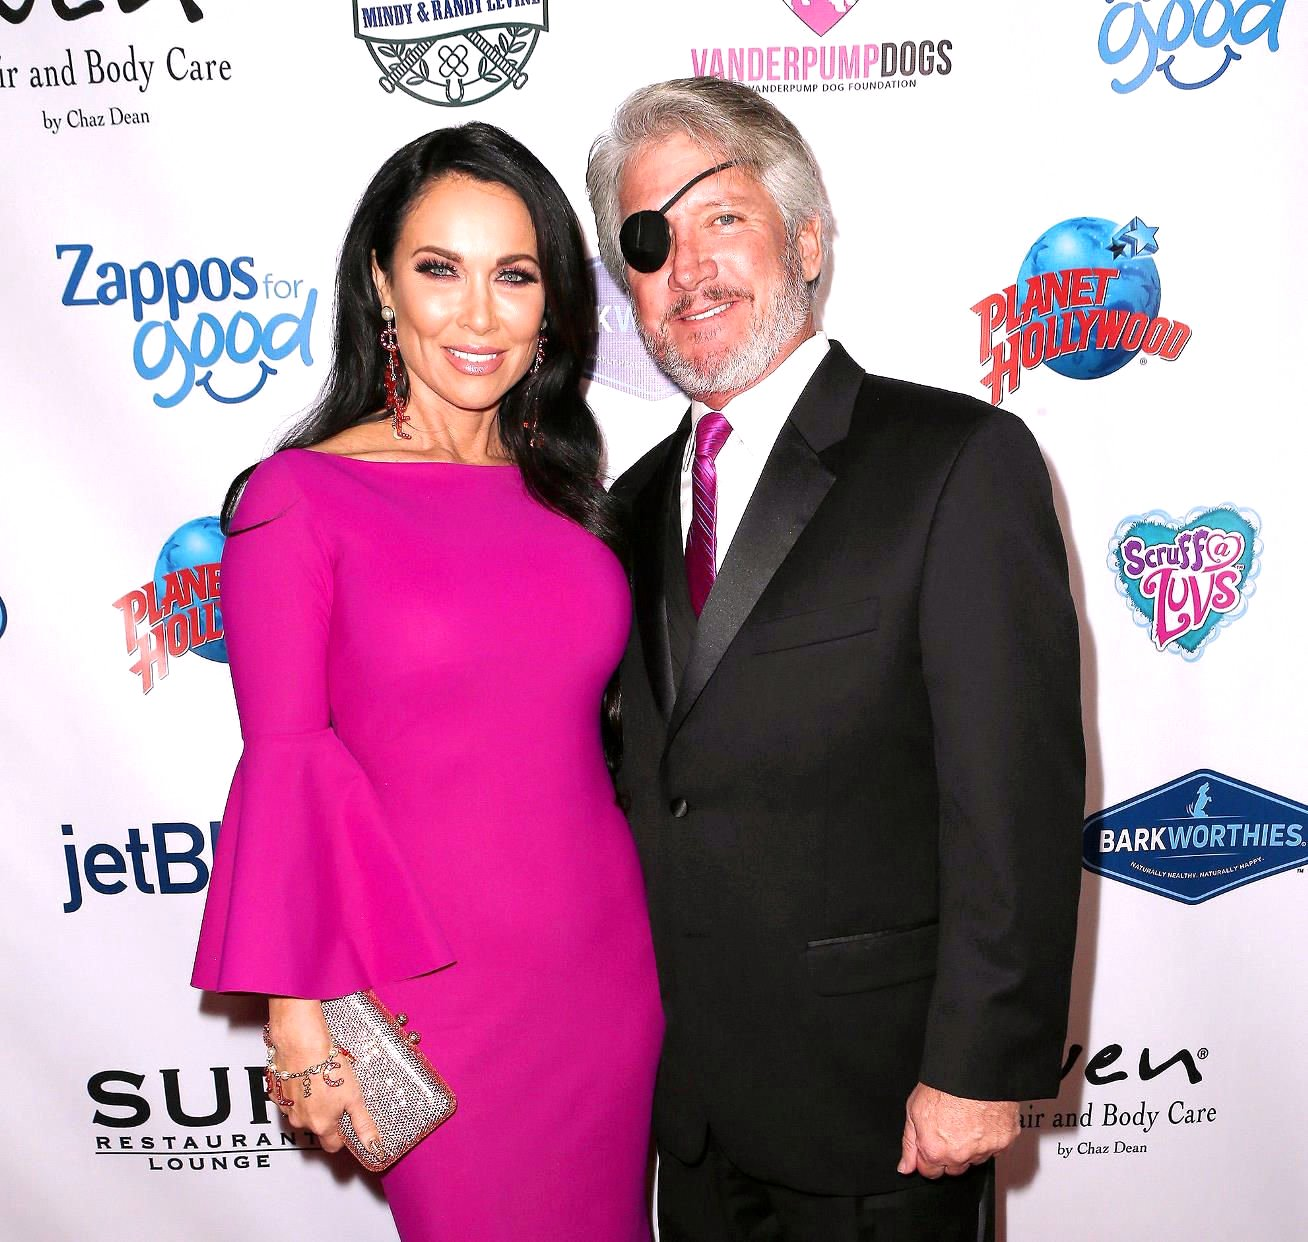 PHOTOS: RHOD Star LeeAnne Locken Marries Rich Emberlin! See Her Massive Wedding Cake and Find Out Which Costars Attended